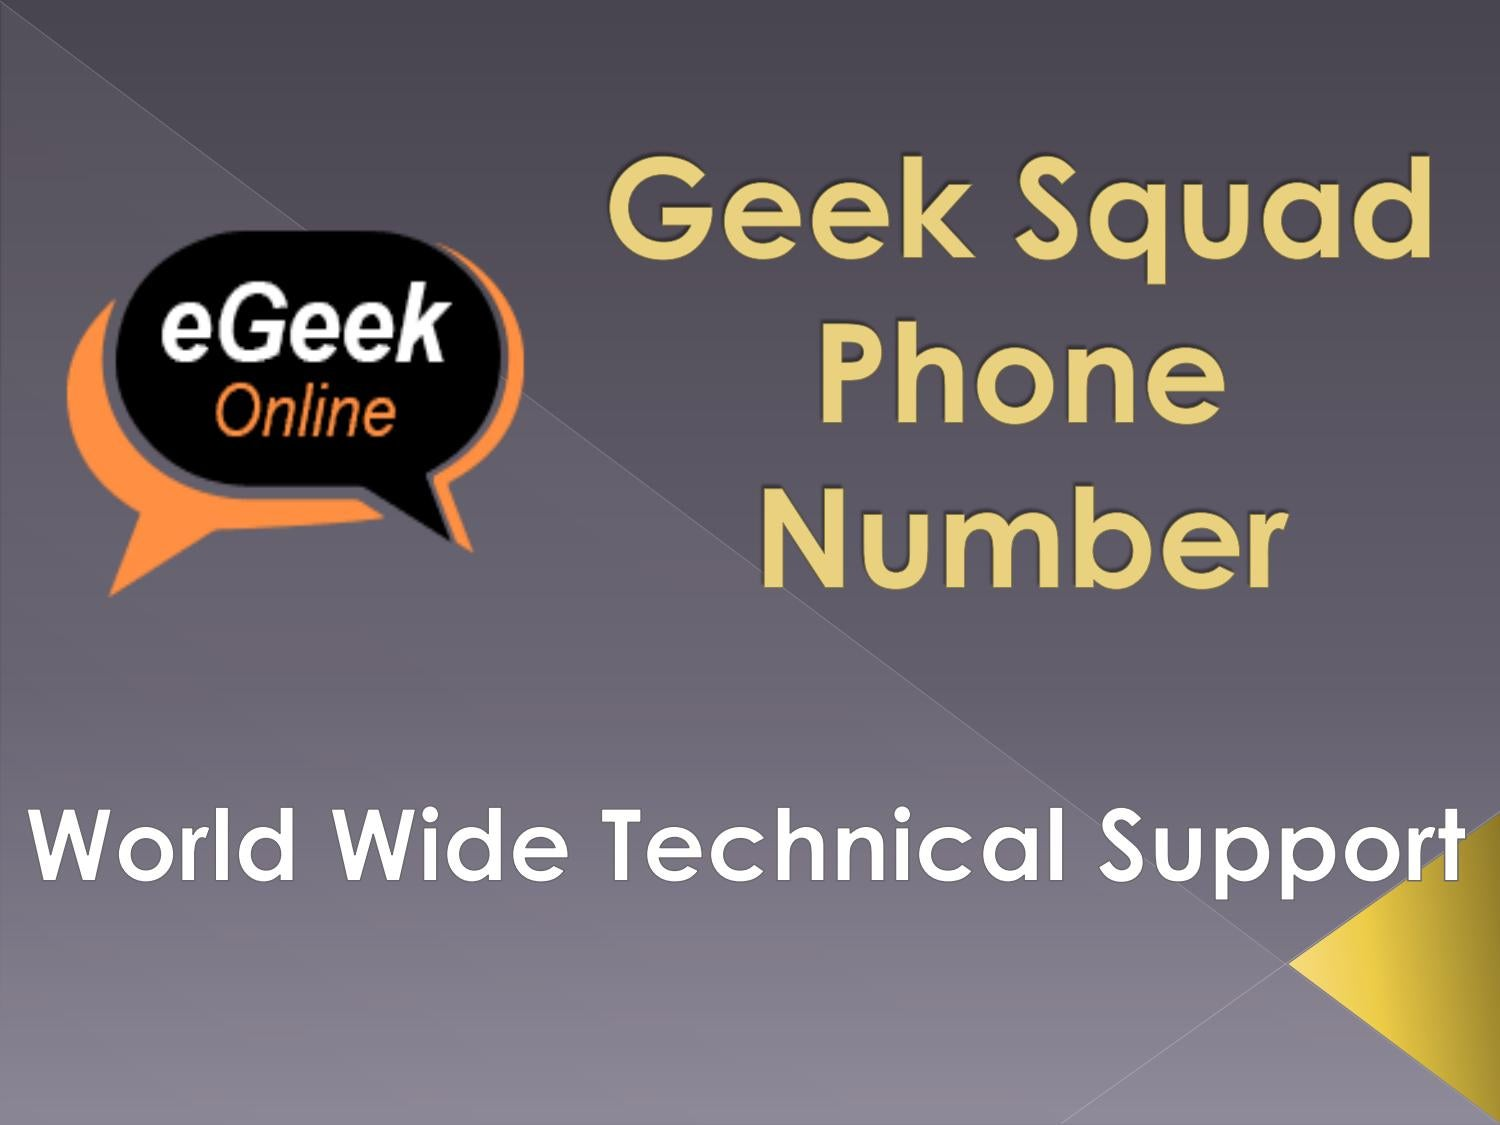 Geek Squad Phone Number by gerry3818 - issuu